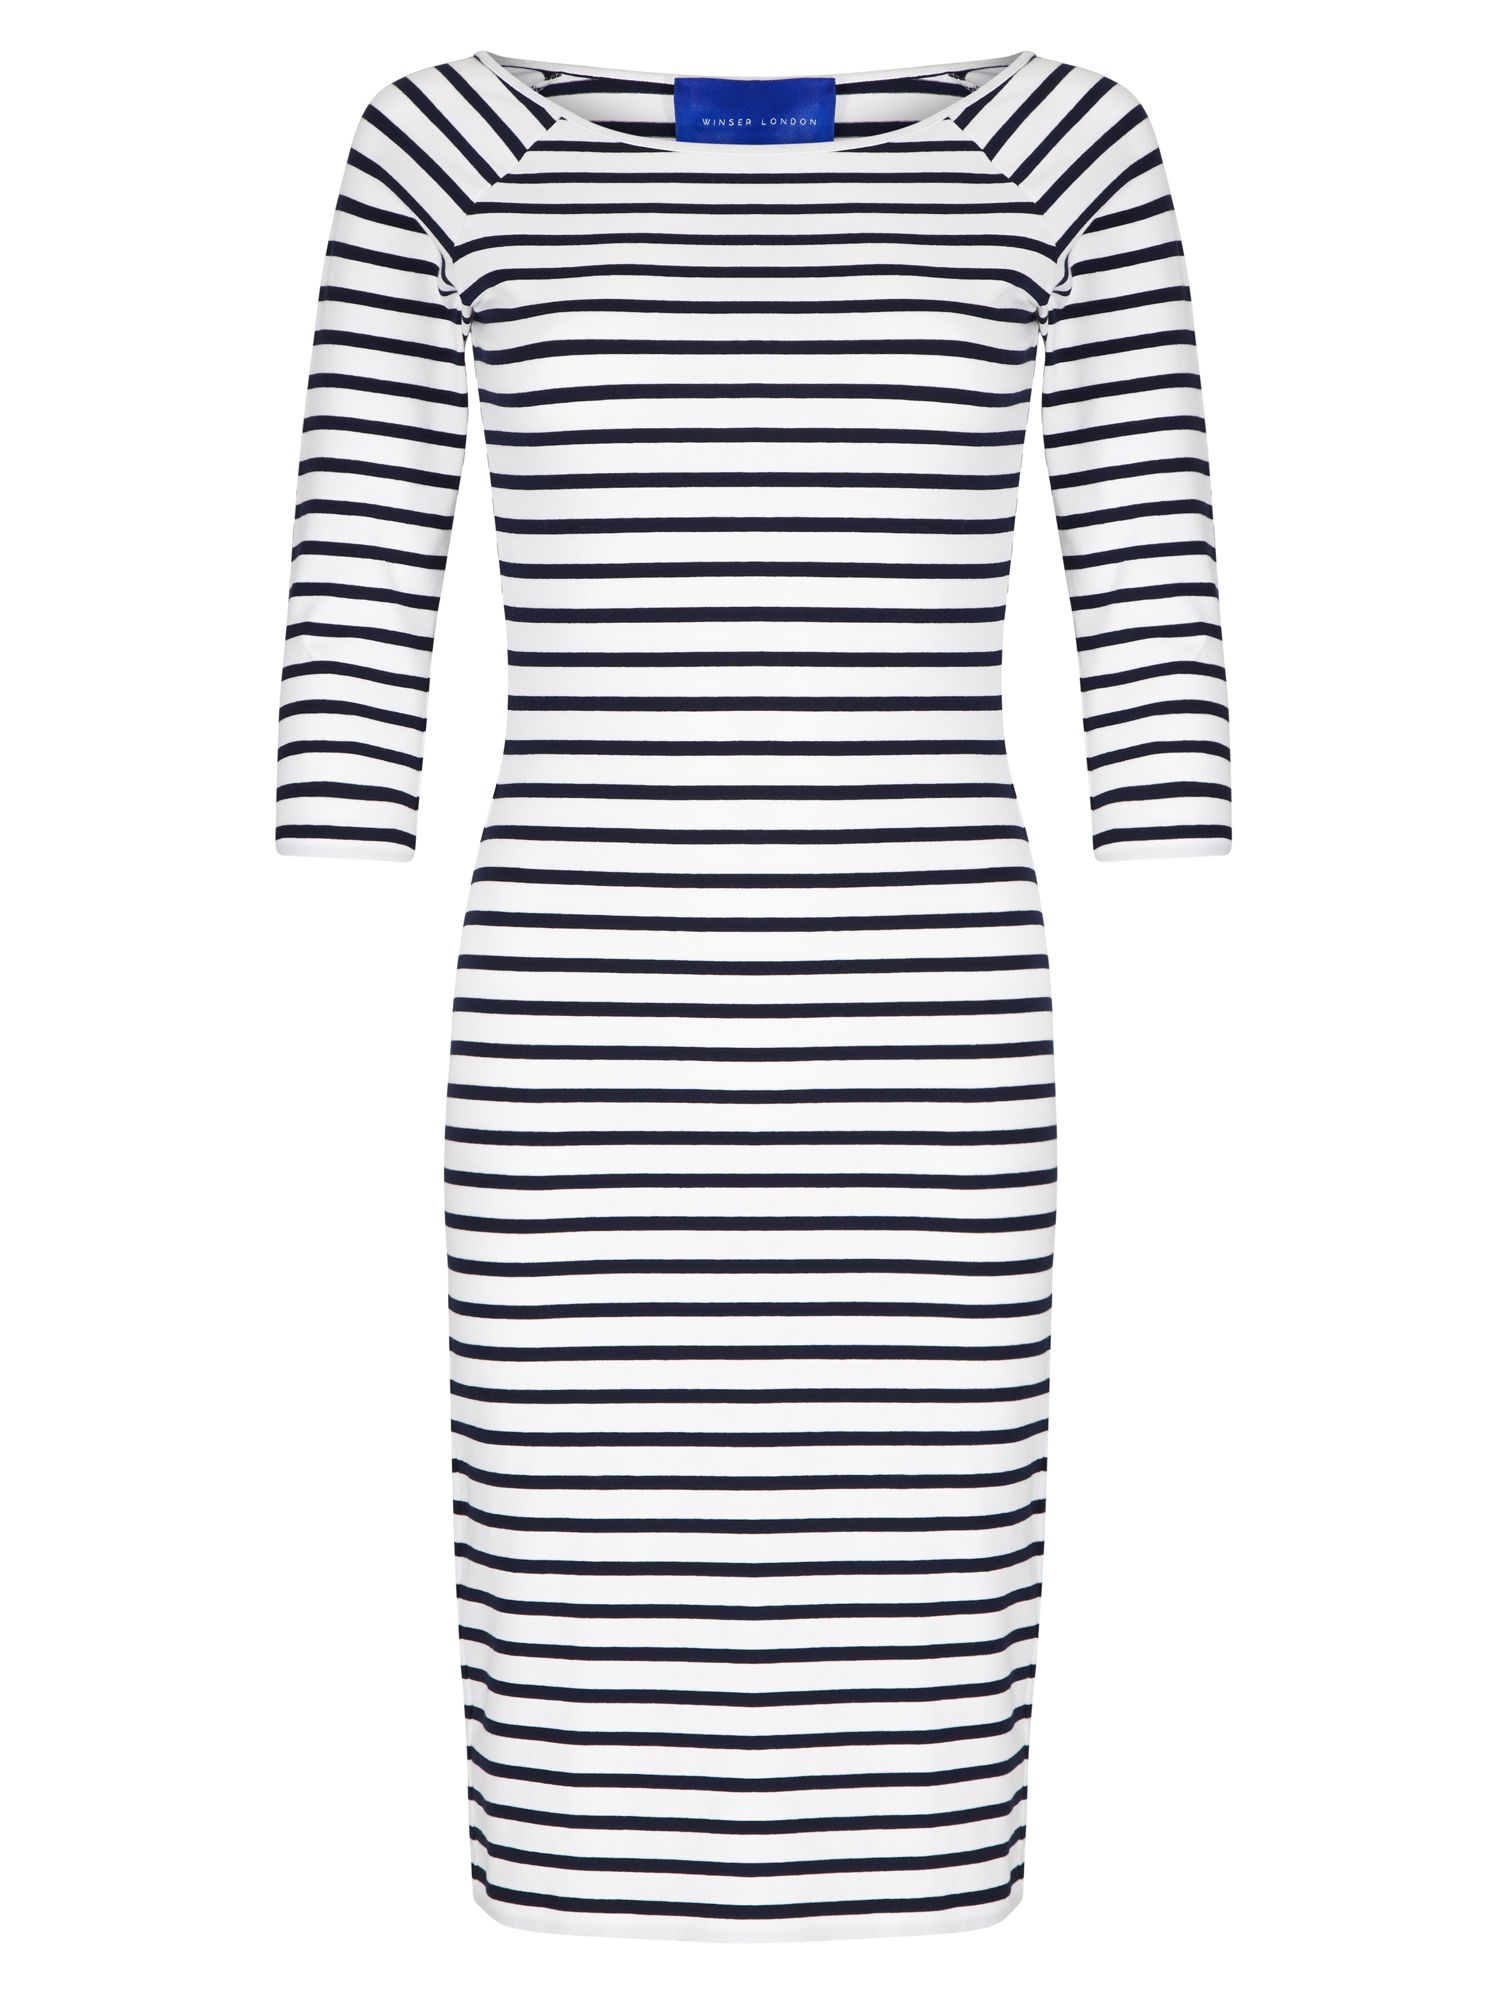 Winser London Cotton Jersey Striped Dress, White